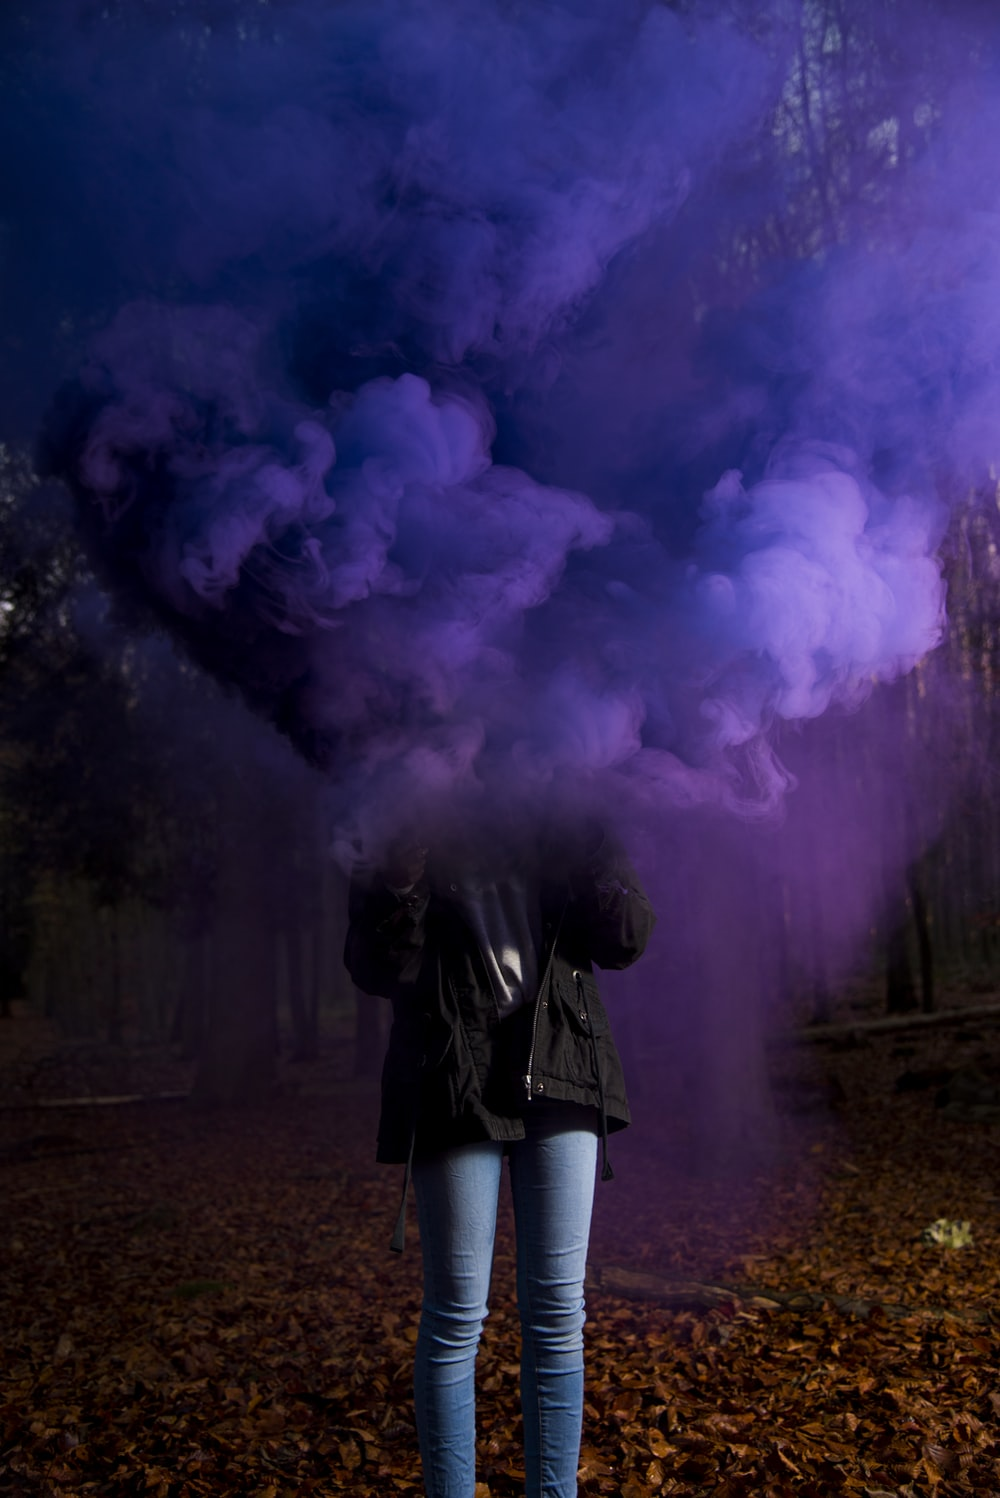 person wearing black jacket and blue jeans holding purple smoke bomb standing on dried tree leaves